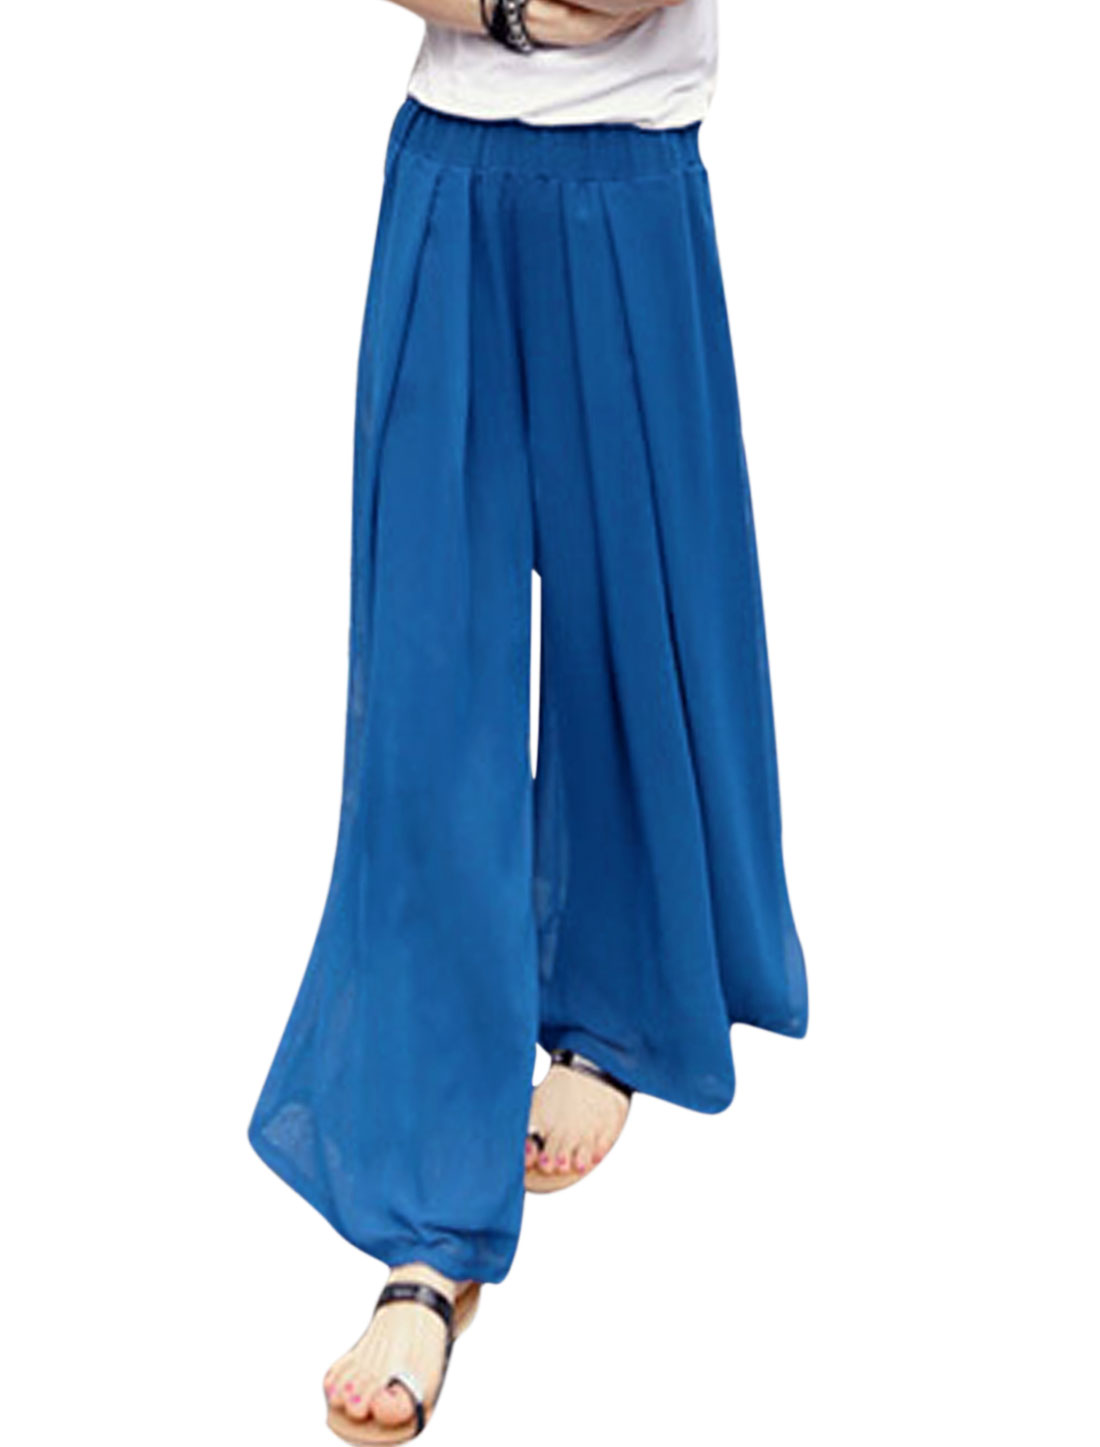 Women Mid Rise Elastic Waist Fully Lined Wide Leg Casual Pants Royal Blue XS